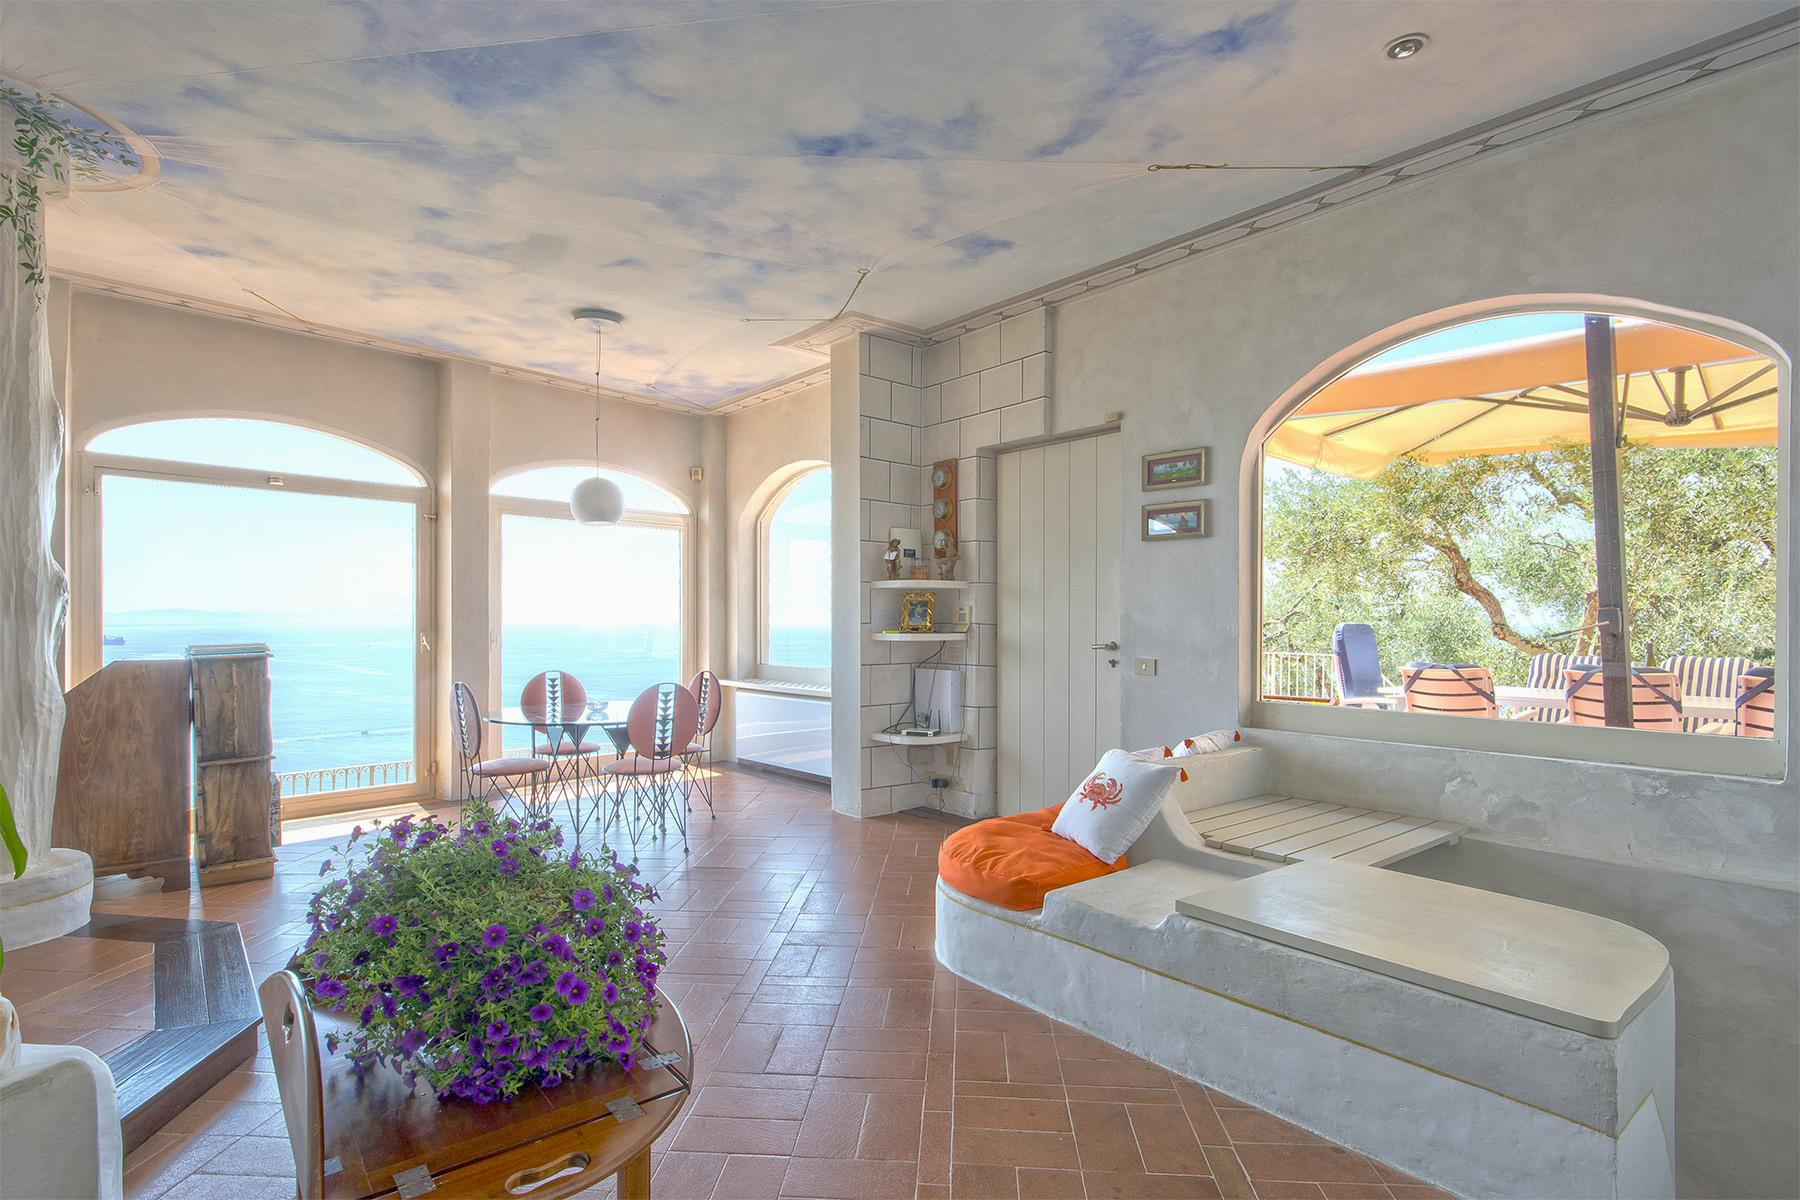 Charming luxury villa with swimming pool overlooking the Ligurian sea - 5